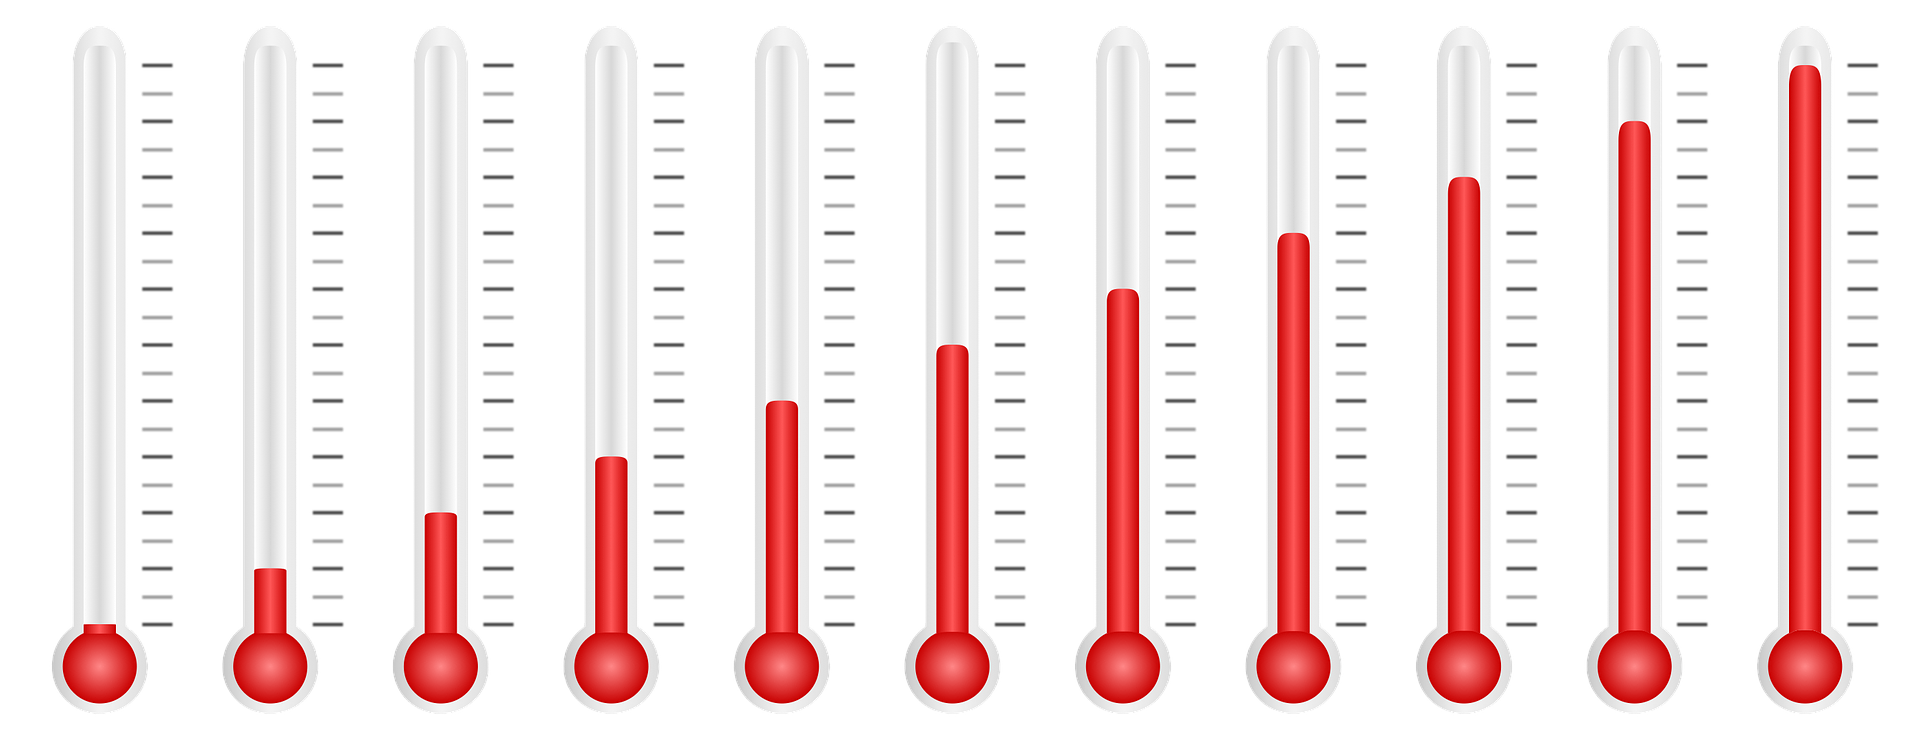 thermometer-1917500_1920.png